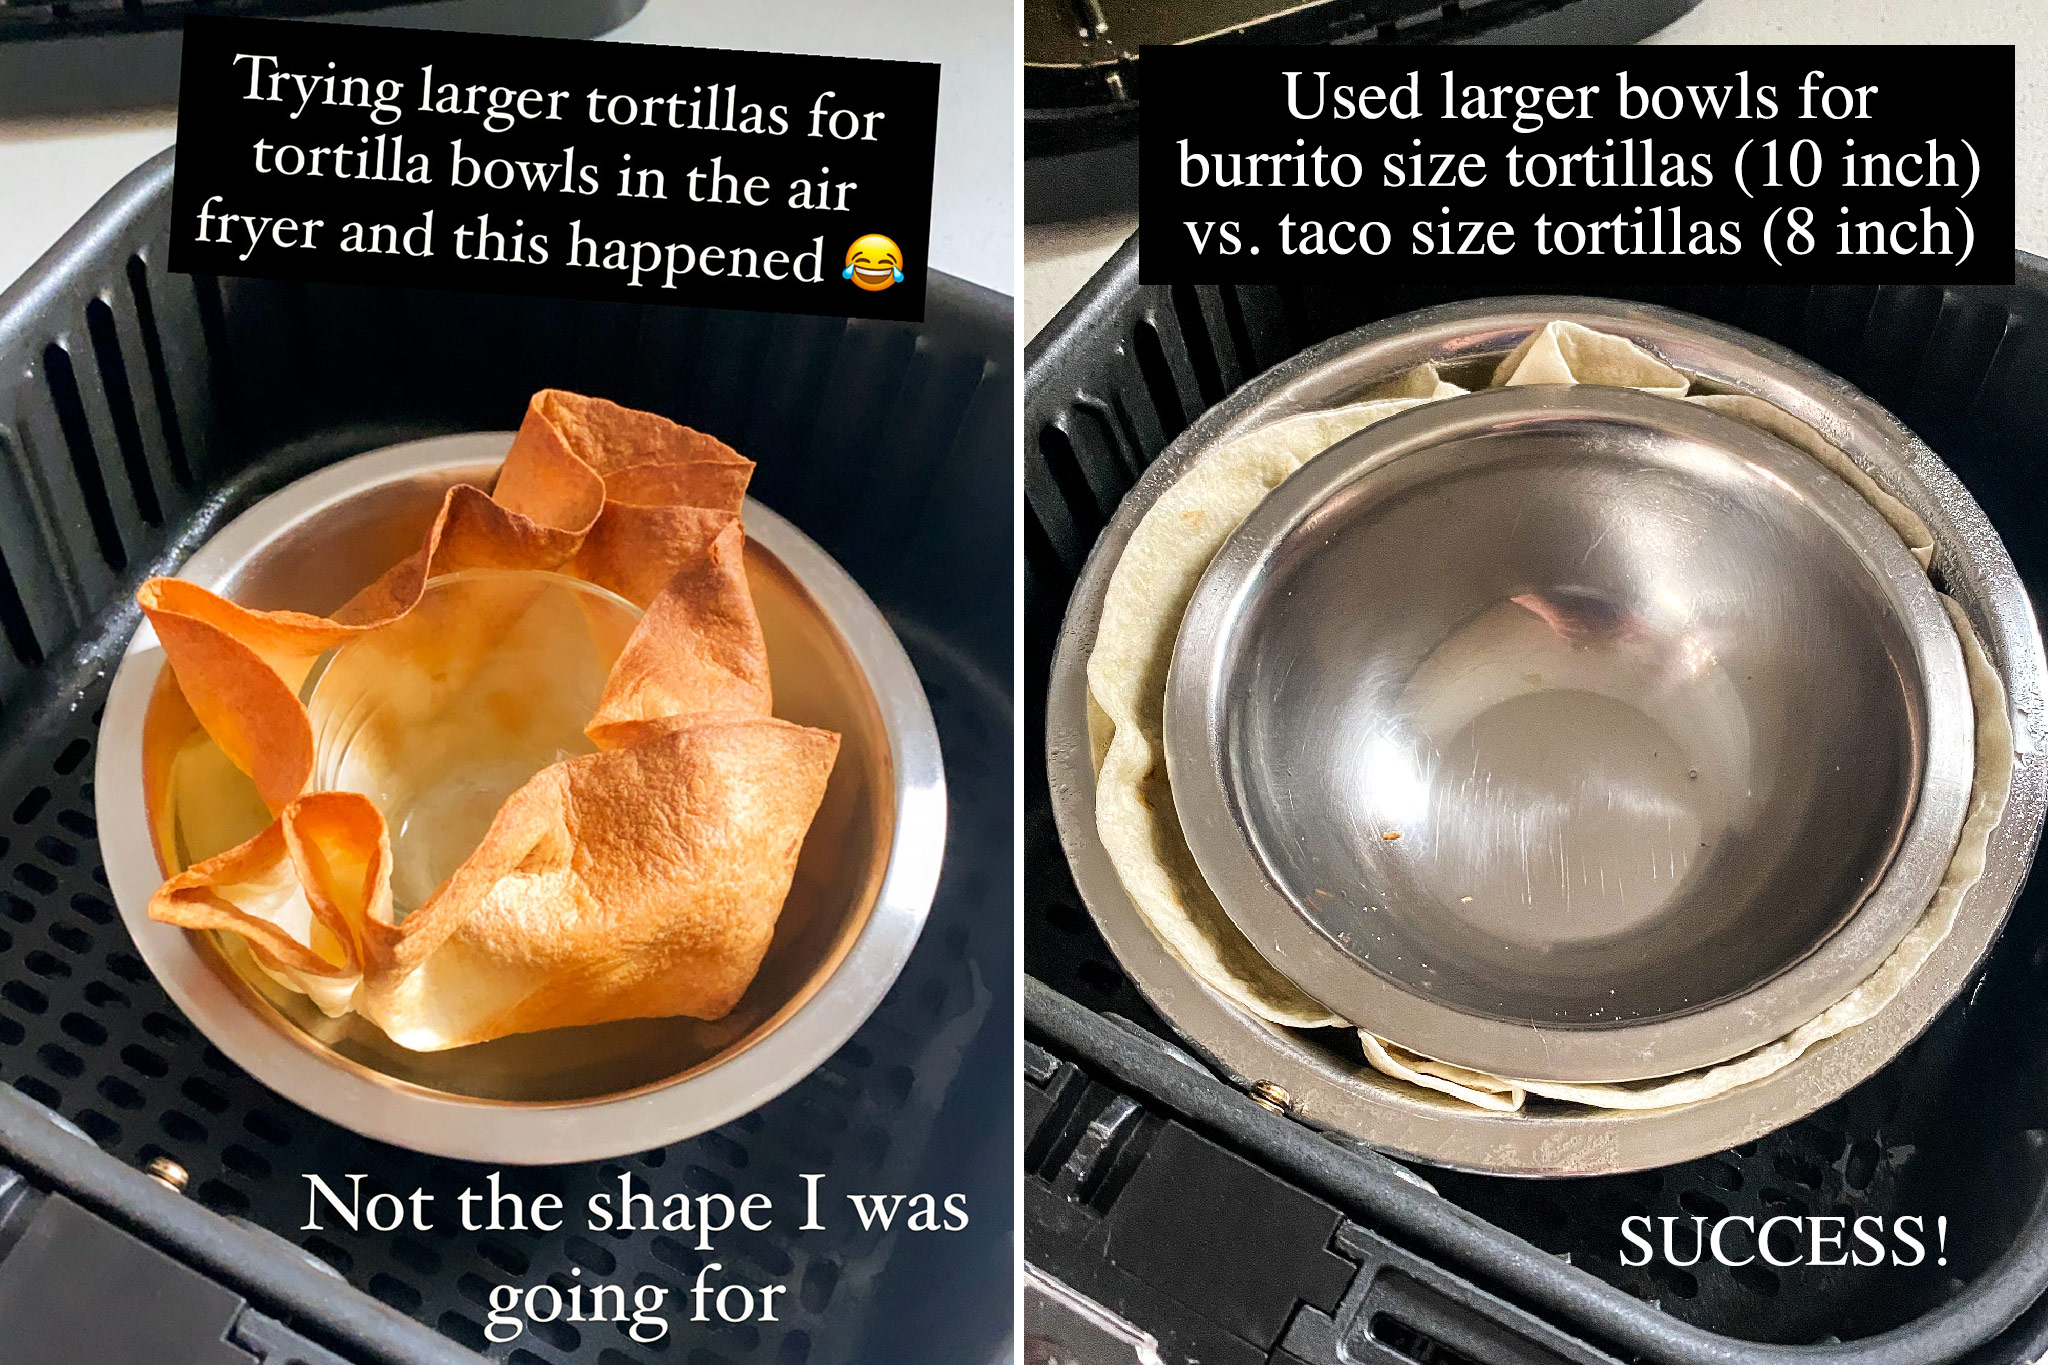 a test using a large burrito size tortilla in an air fryer